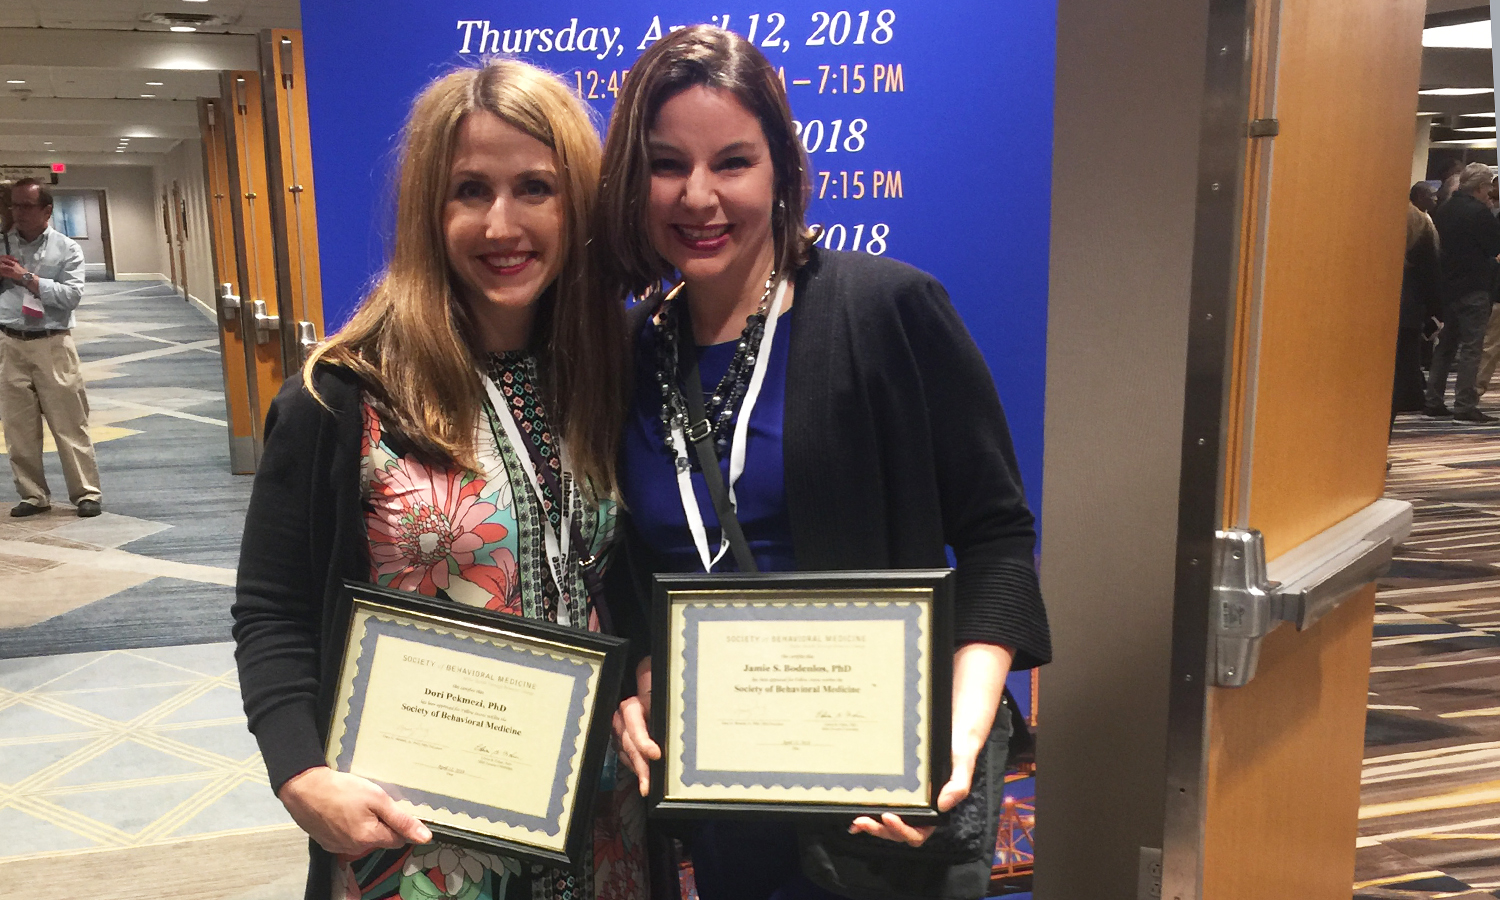 Associate Professor of Health Behavior University of Alabama at Birmingham Dori Pekmezi and Associate Professor of Psychology Jamie Bodenlos pose for a photo after reciving awards during the annual conference of the Society of Behavioral Medicine.